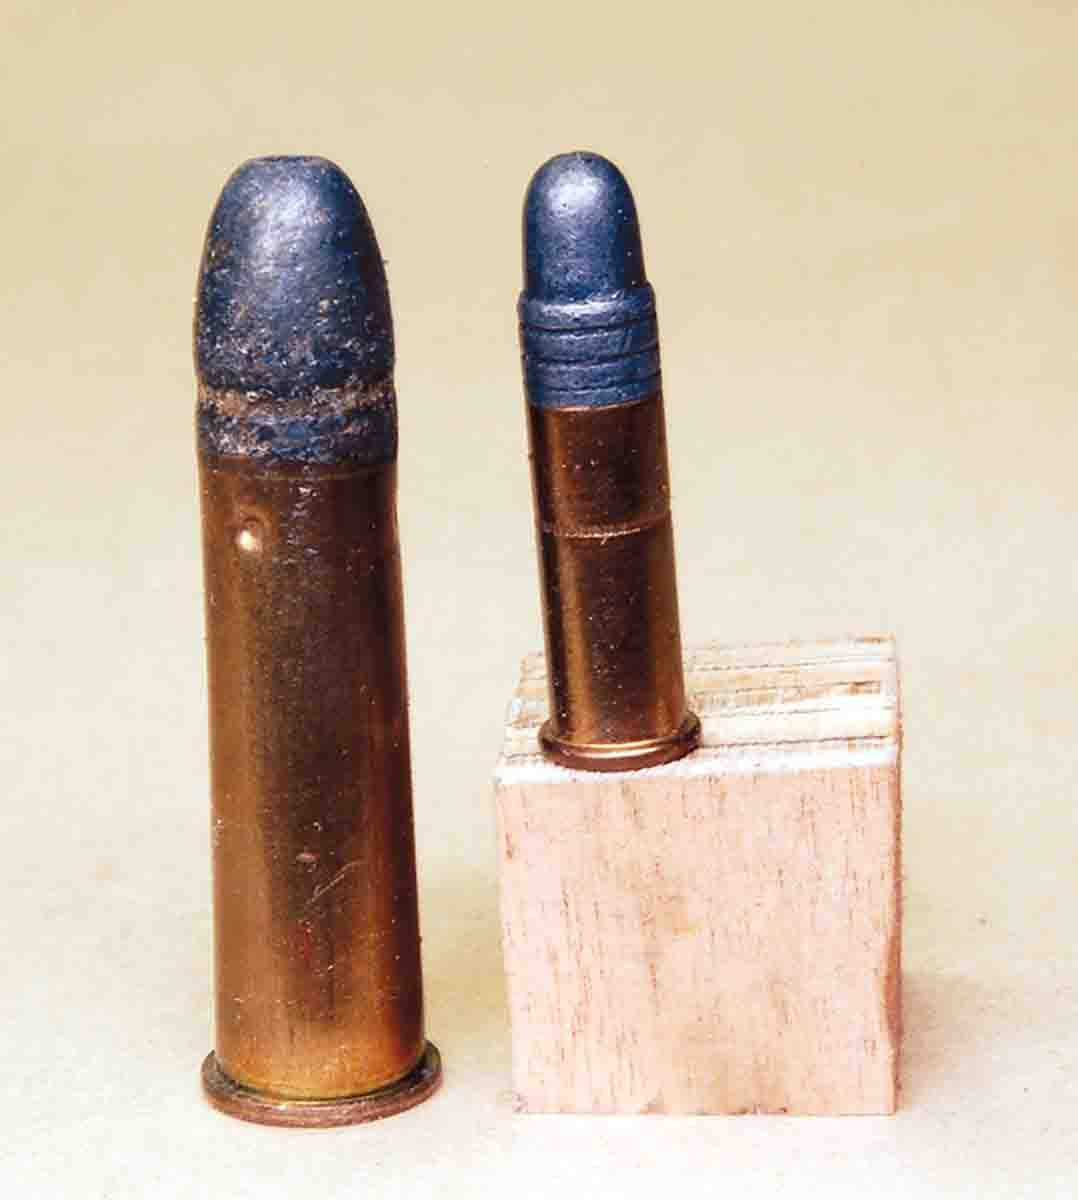 The .310 Cadet used an outside lubed bullet (left) just like the .22 rimfire (right).